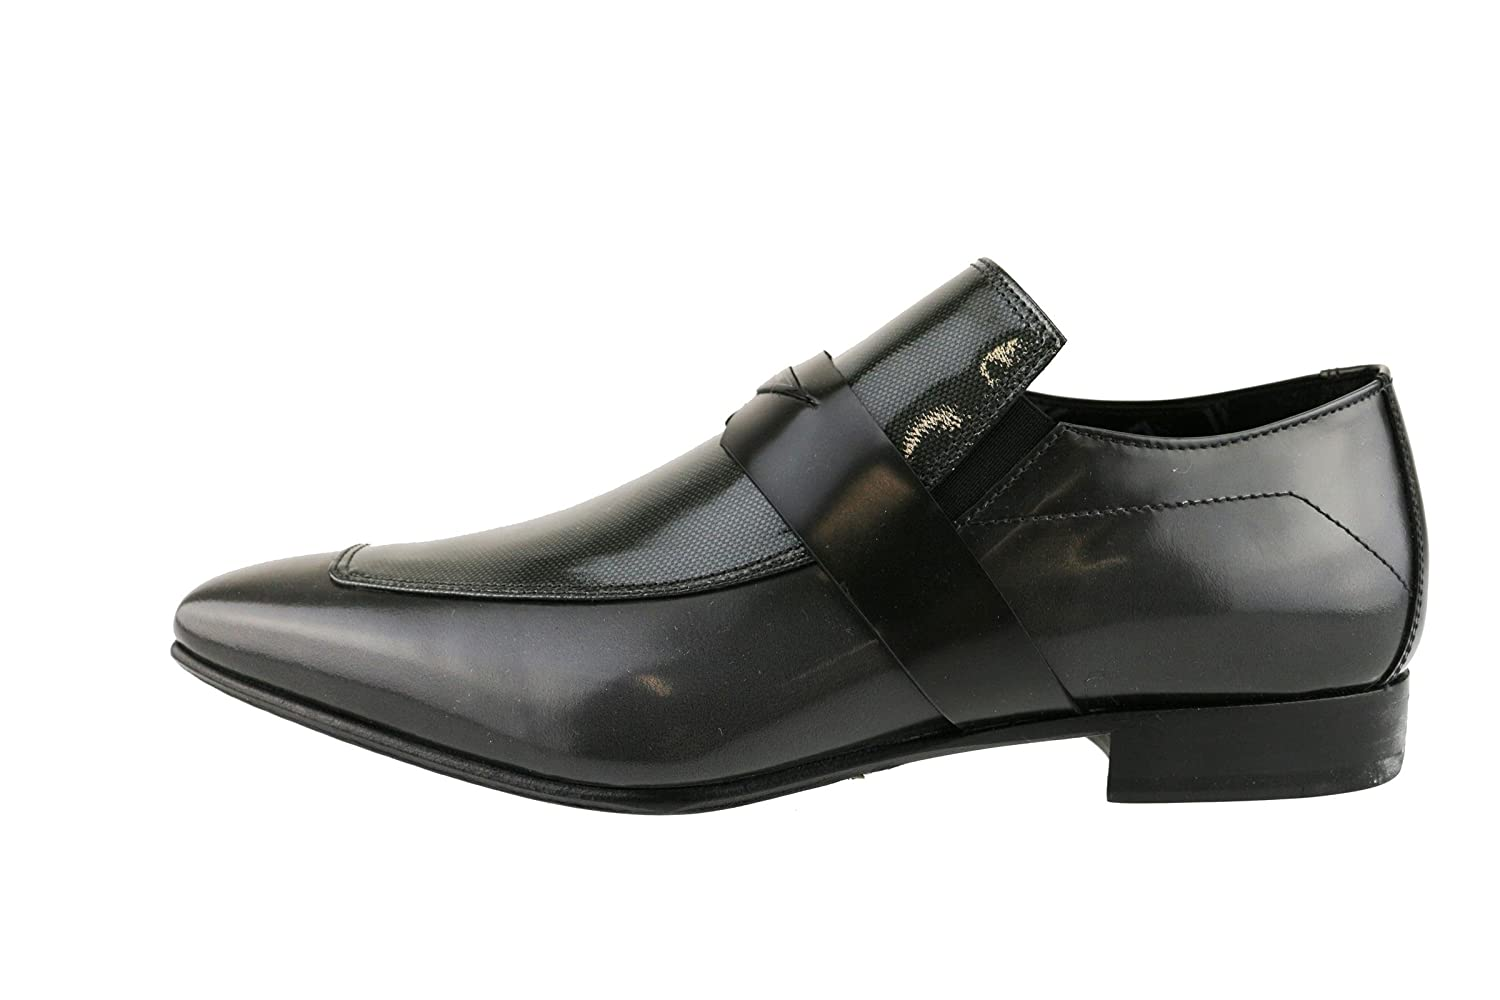 CARLO PIGNATELLI Oxford-shoes / Elegant Man Leather Patent Leather (7 US / 40 EU, Gray )